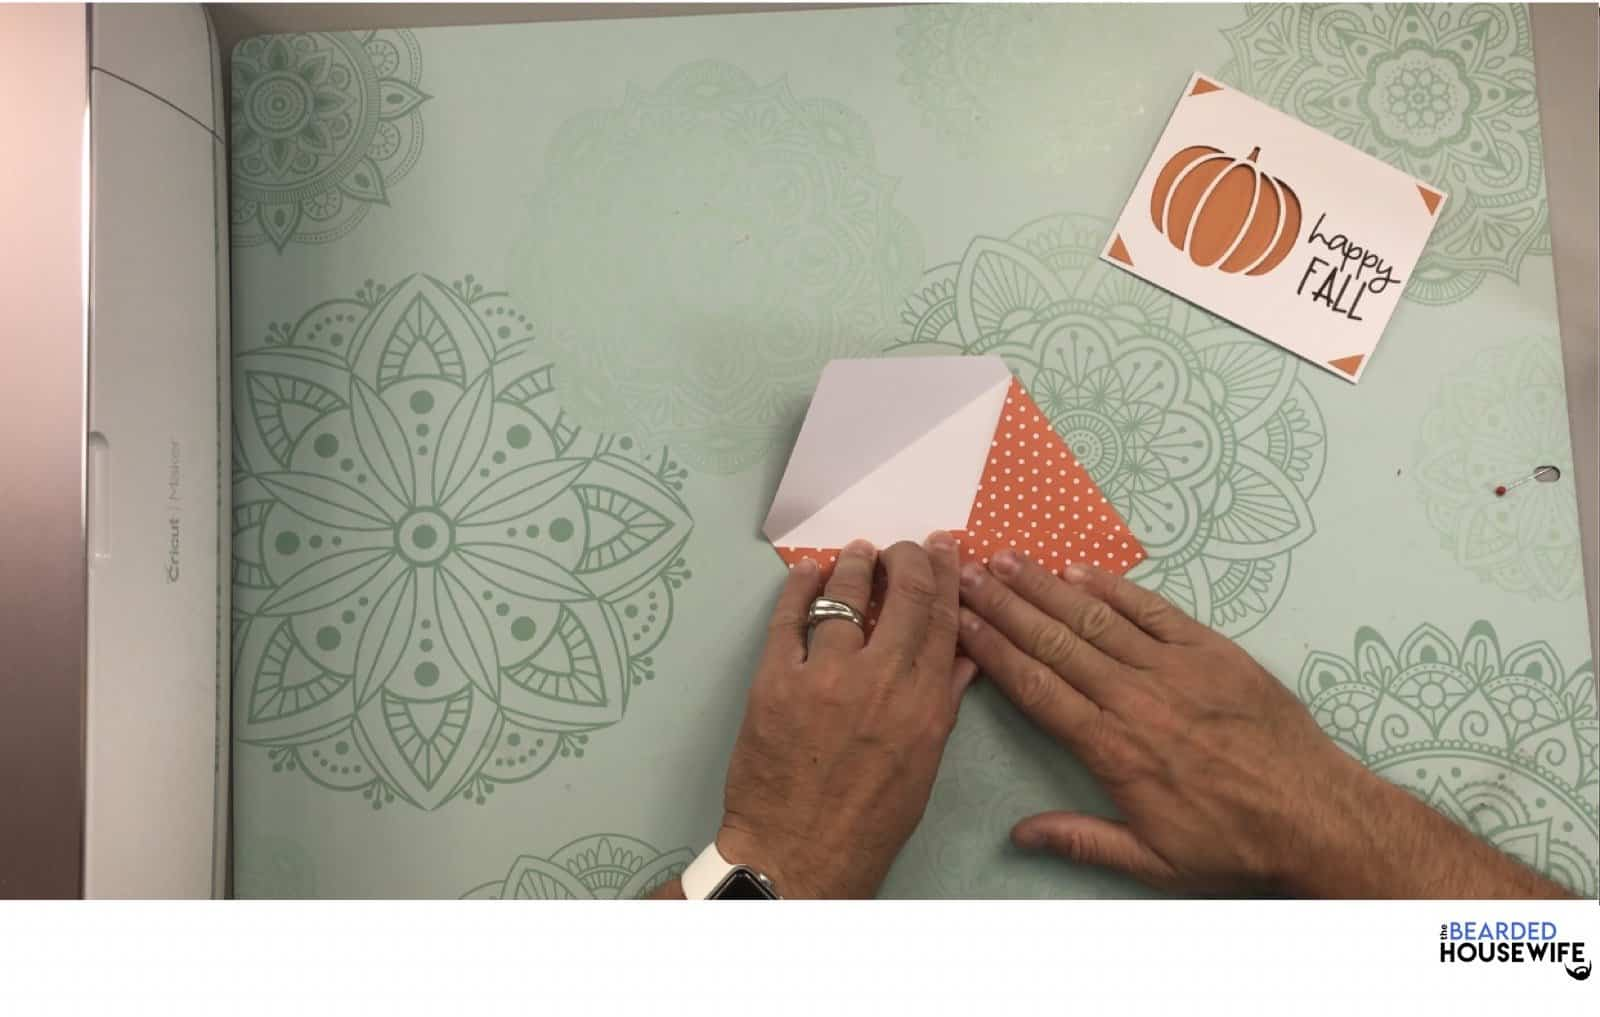 bring the bottom flap up and form the envelope